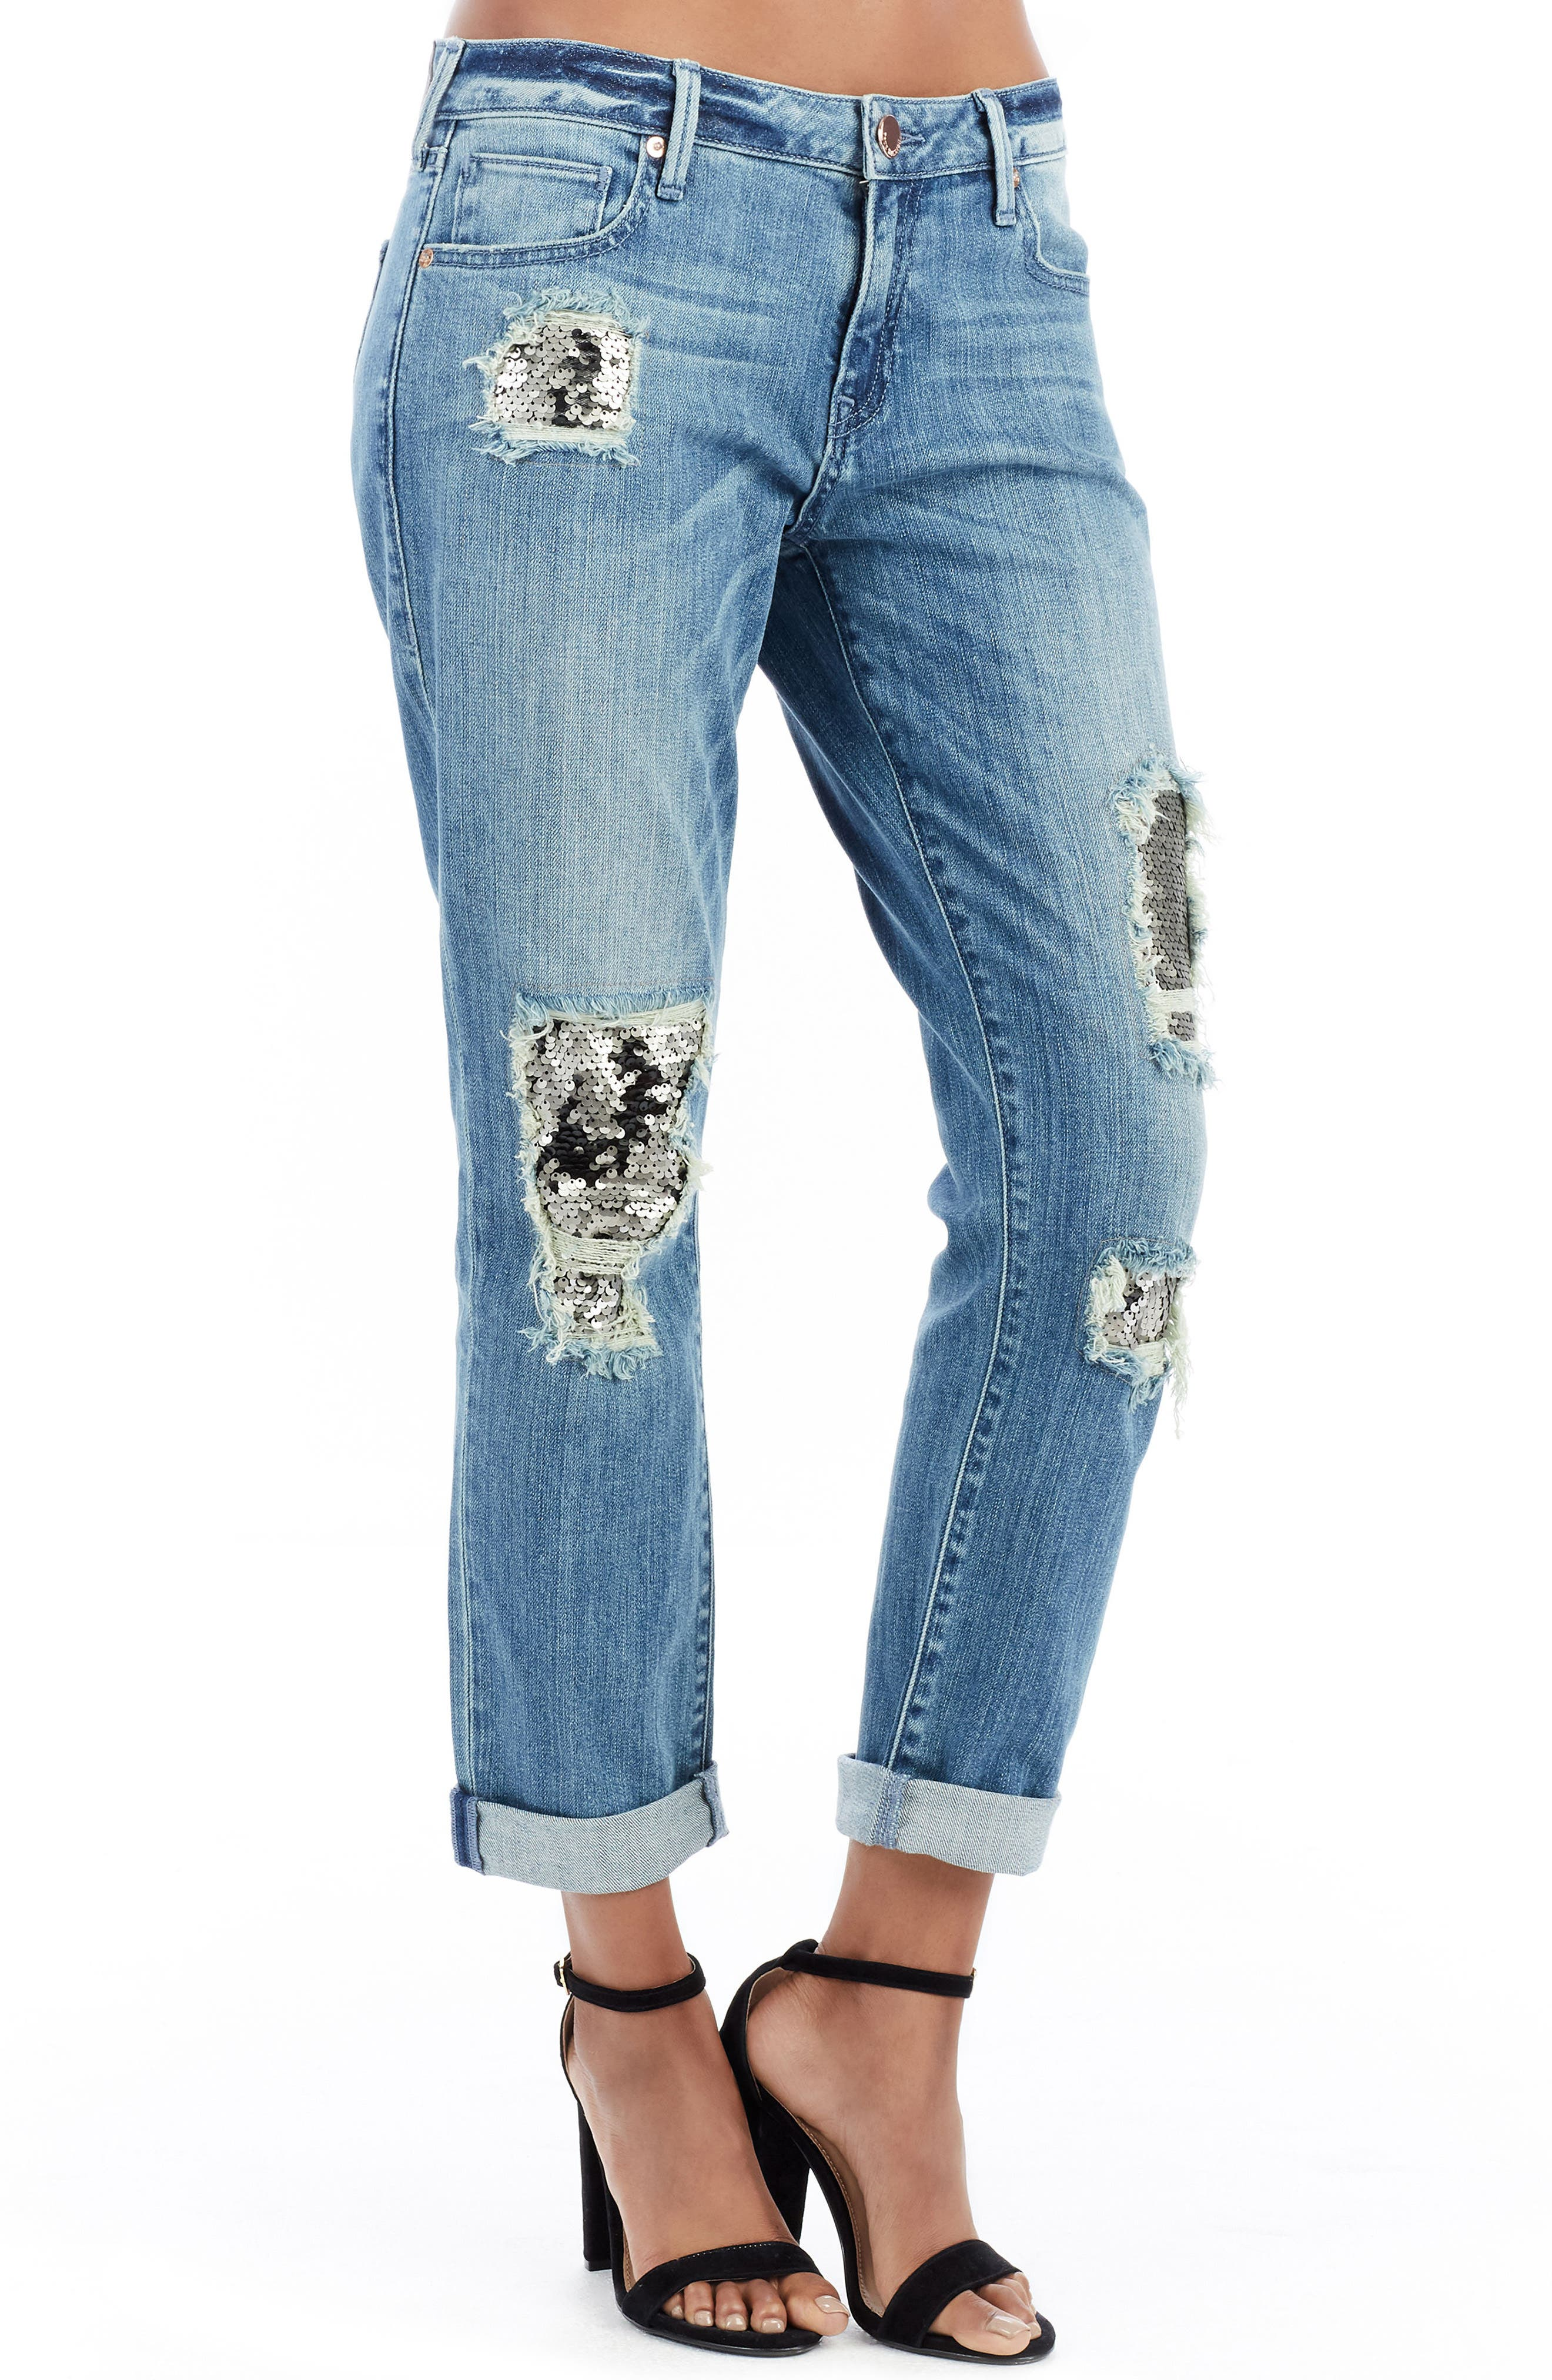 Cameron Slim Boyfriend Jeans,                         Main,                         color, Dark Rebel Shadow